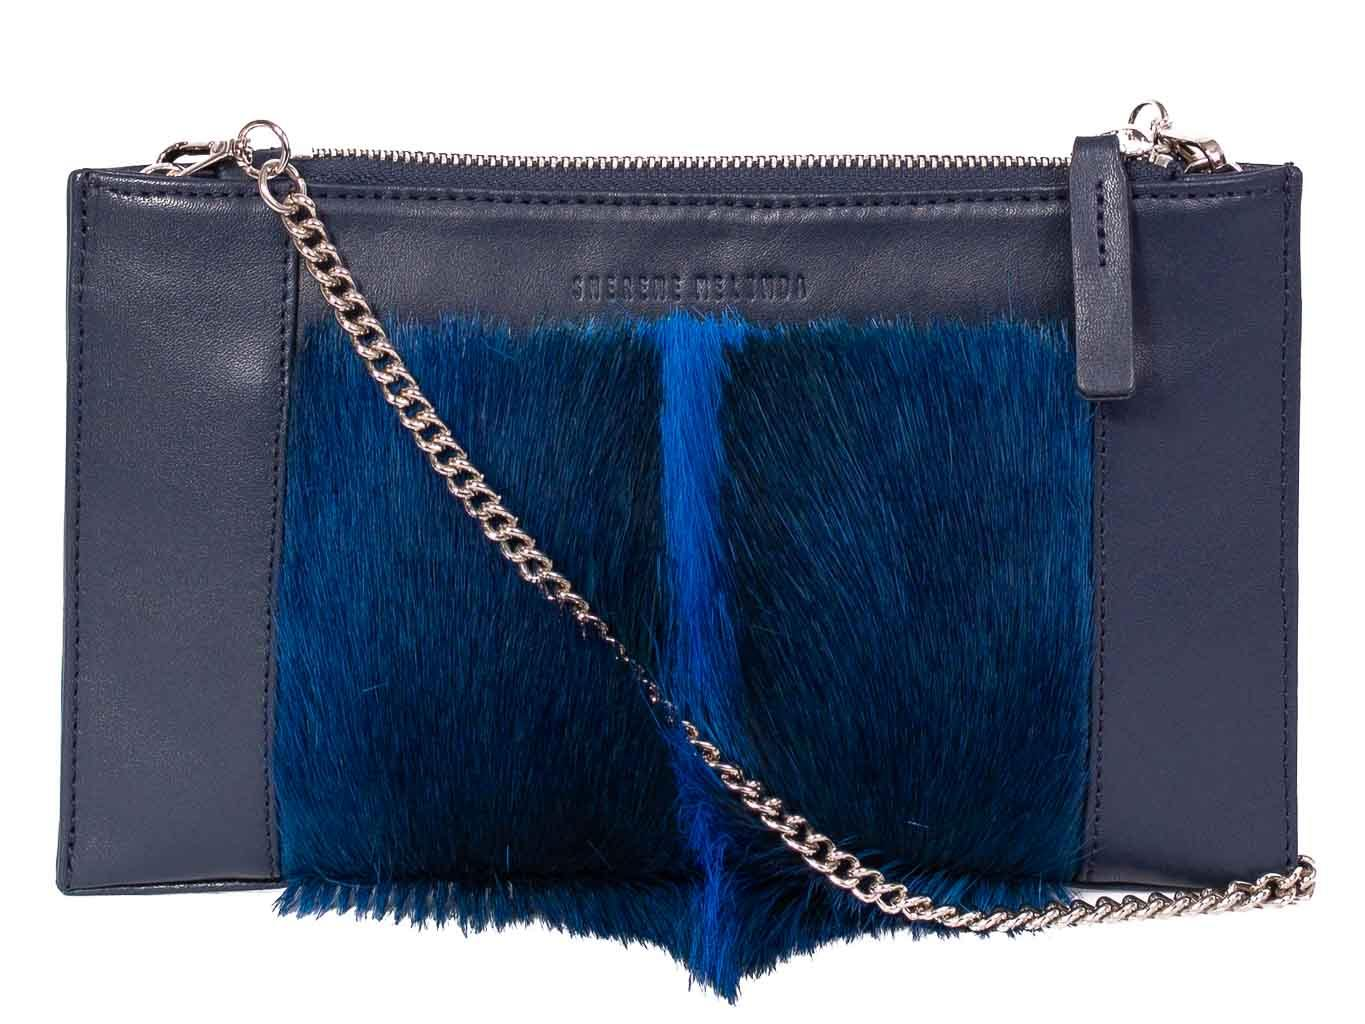 Clutch Springbok Handbag in Navy Blue with a fan feature by Sherene Melinda front strap